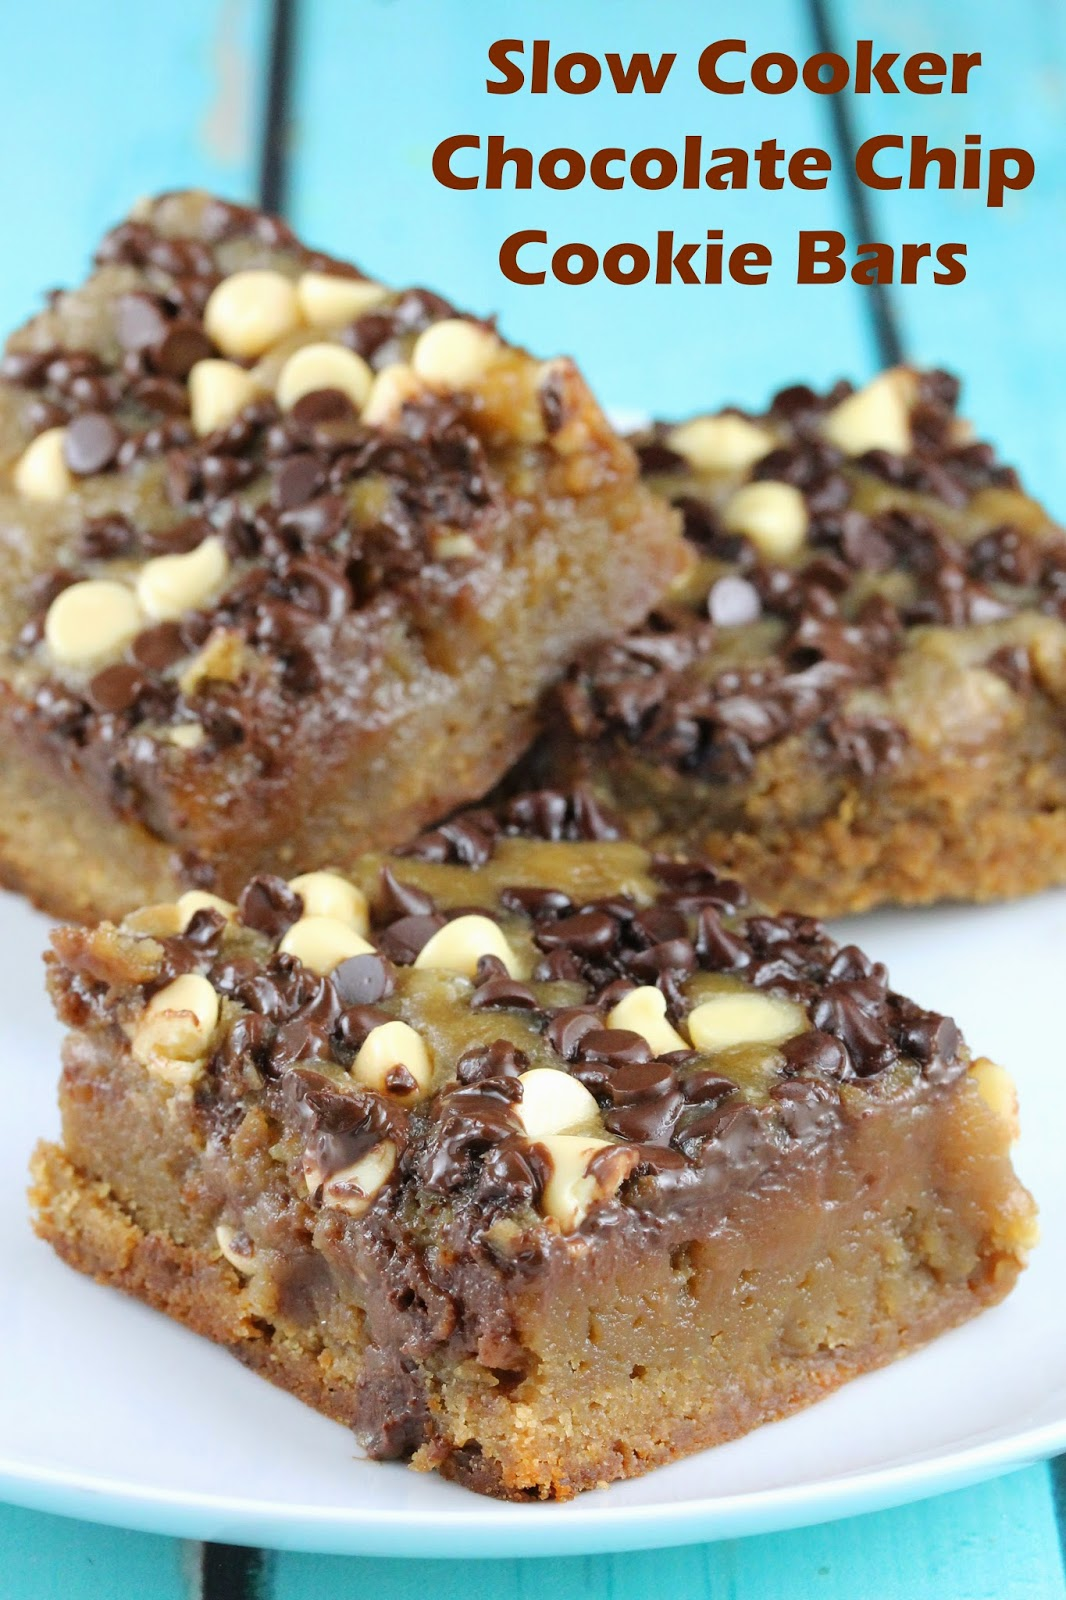 Dessert Crock Pot Images - Best Dessert Ideas